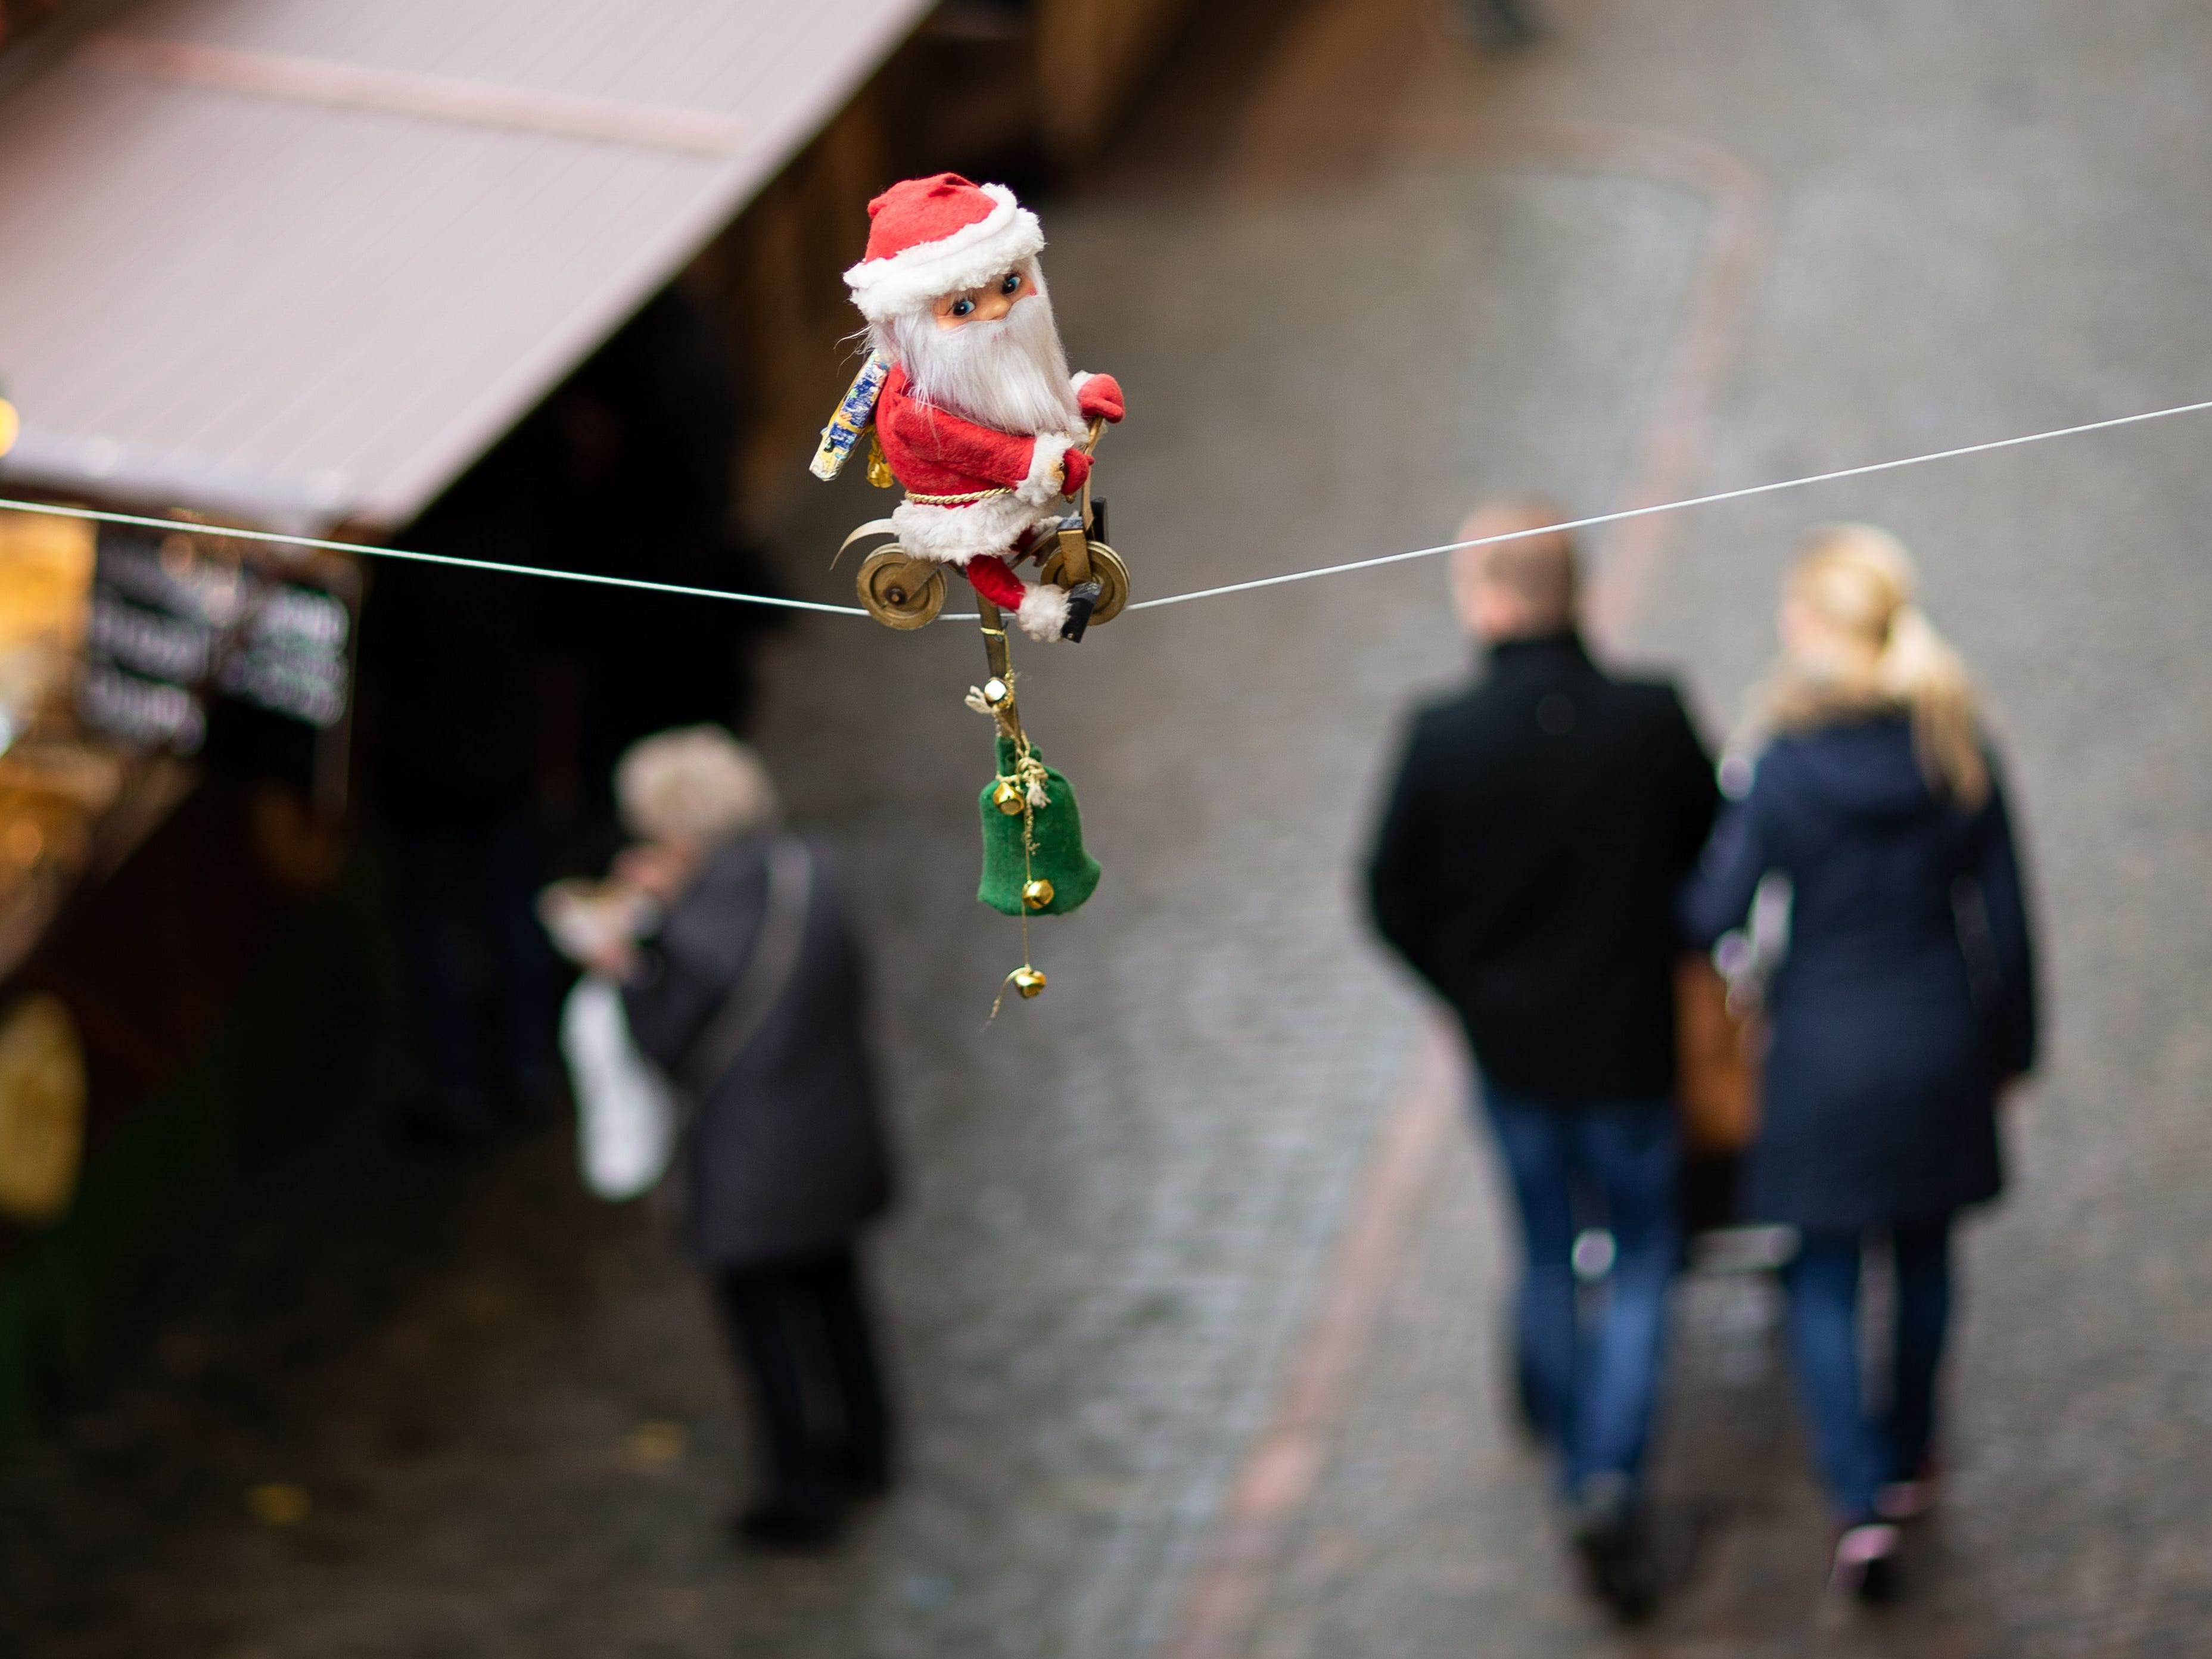 A small Santa Claus figurine cycles on a rope that stretches over the Christmas market in Osnabrueck, Germany, on Dec. 19, 2018.